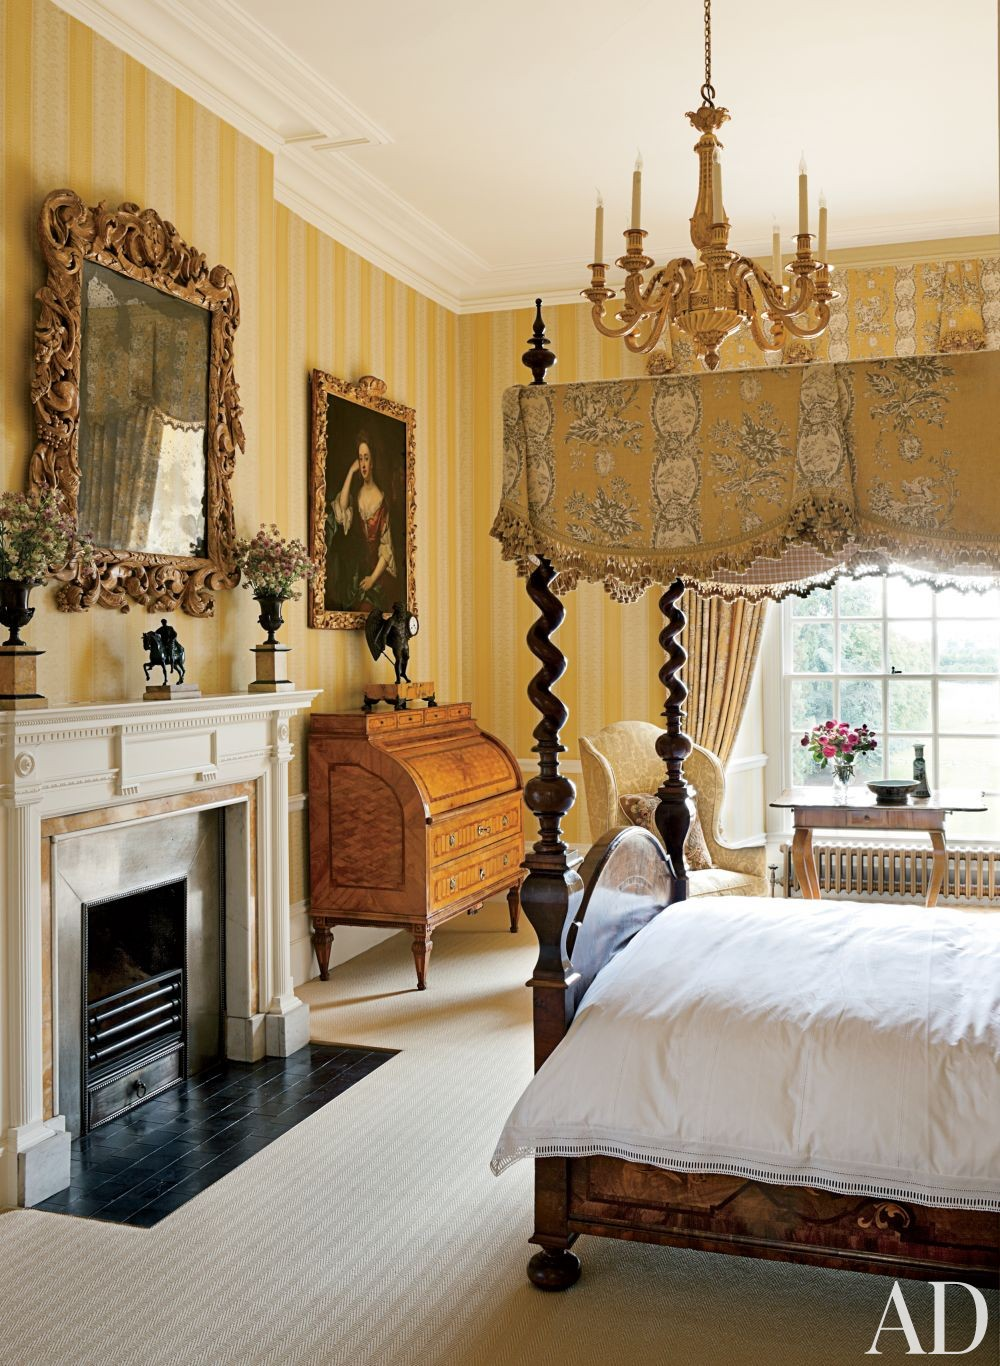 Traditional Bedroom by Spencer-Churchill Designs Inc. and Ptolemy Dean Architects Ltd. in Northamptonshire, England